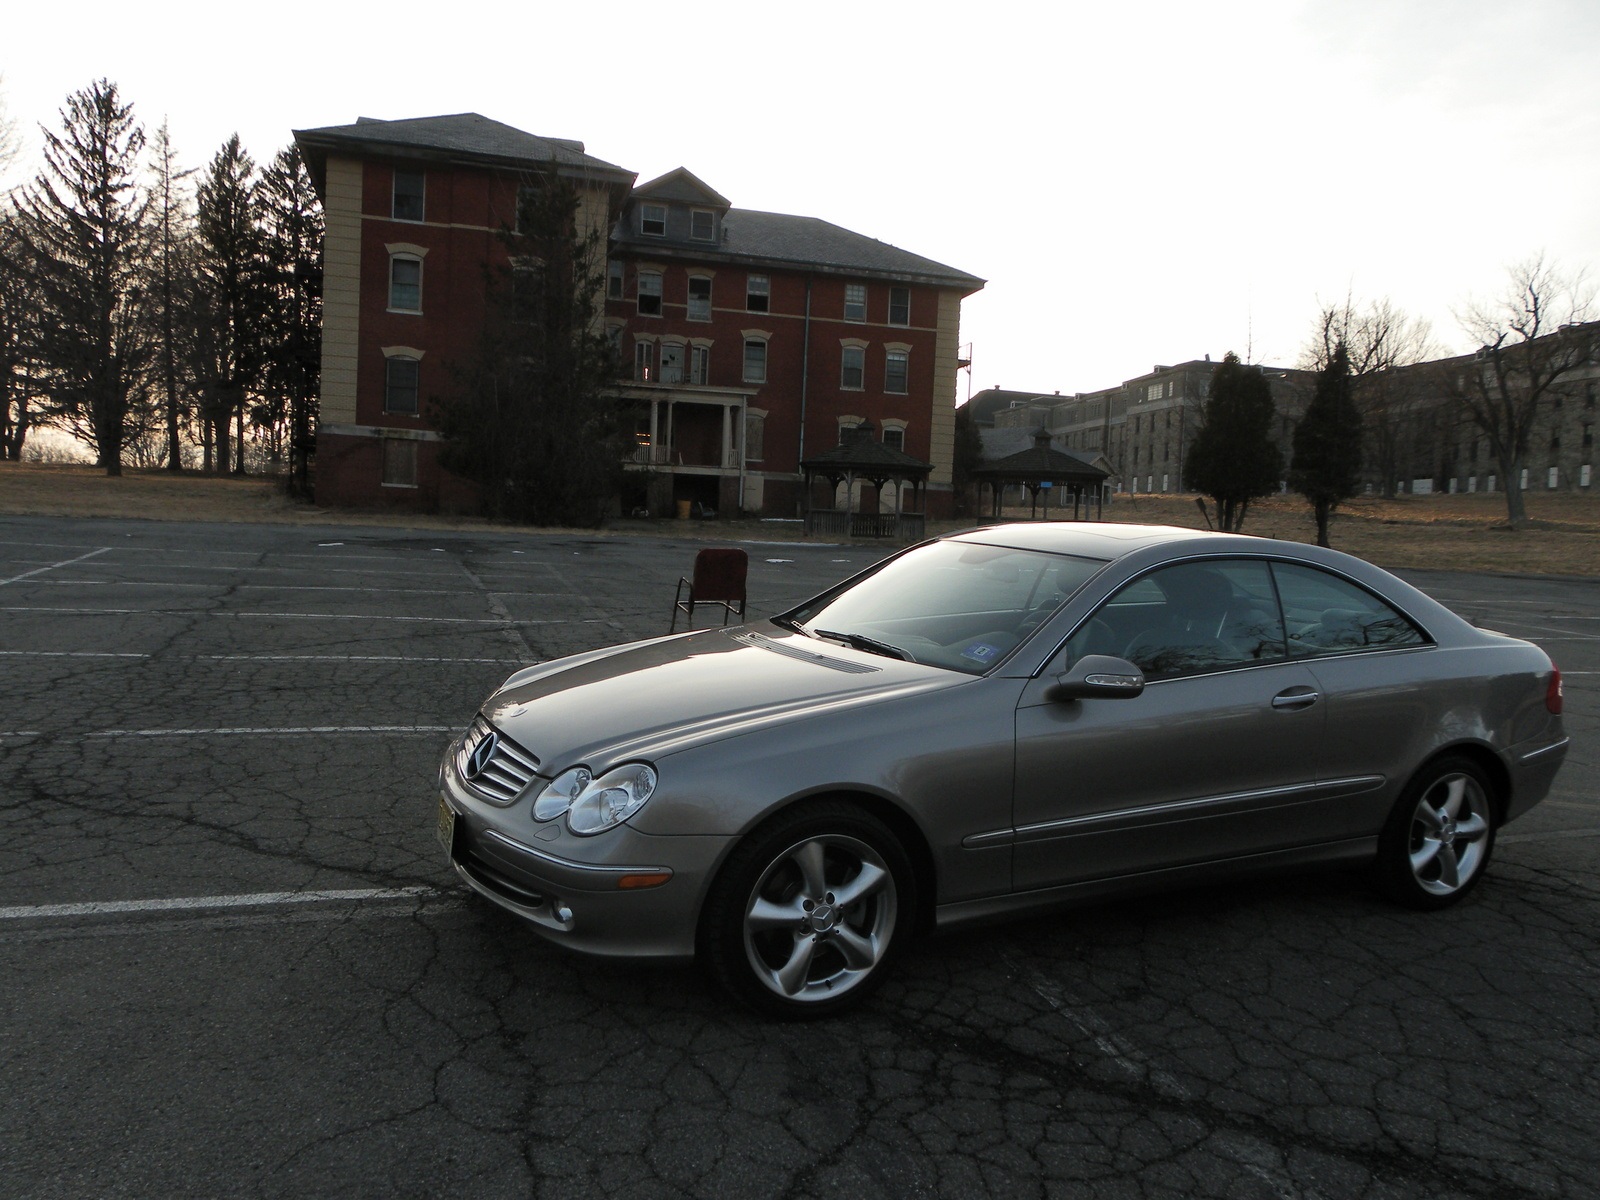 2005 mercedes benz clk class pictures cargurus for Mercedes benz coupe 2005